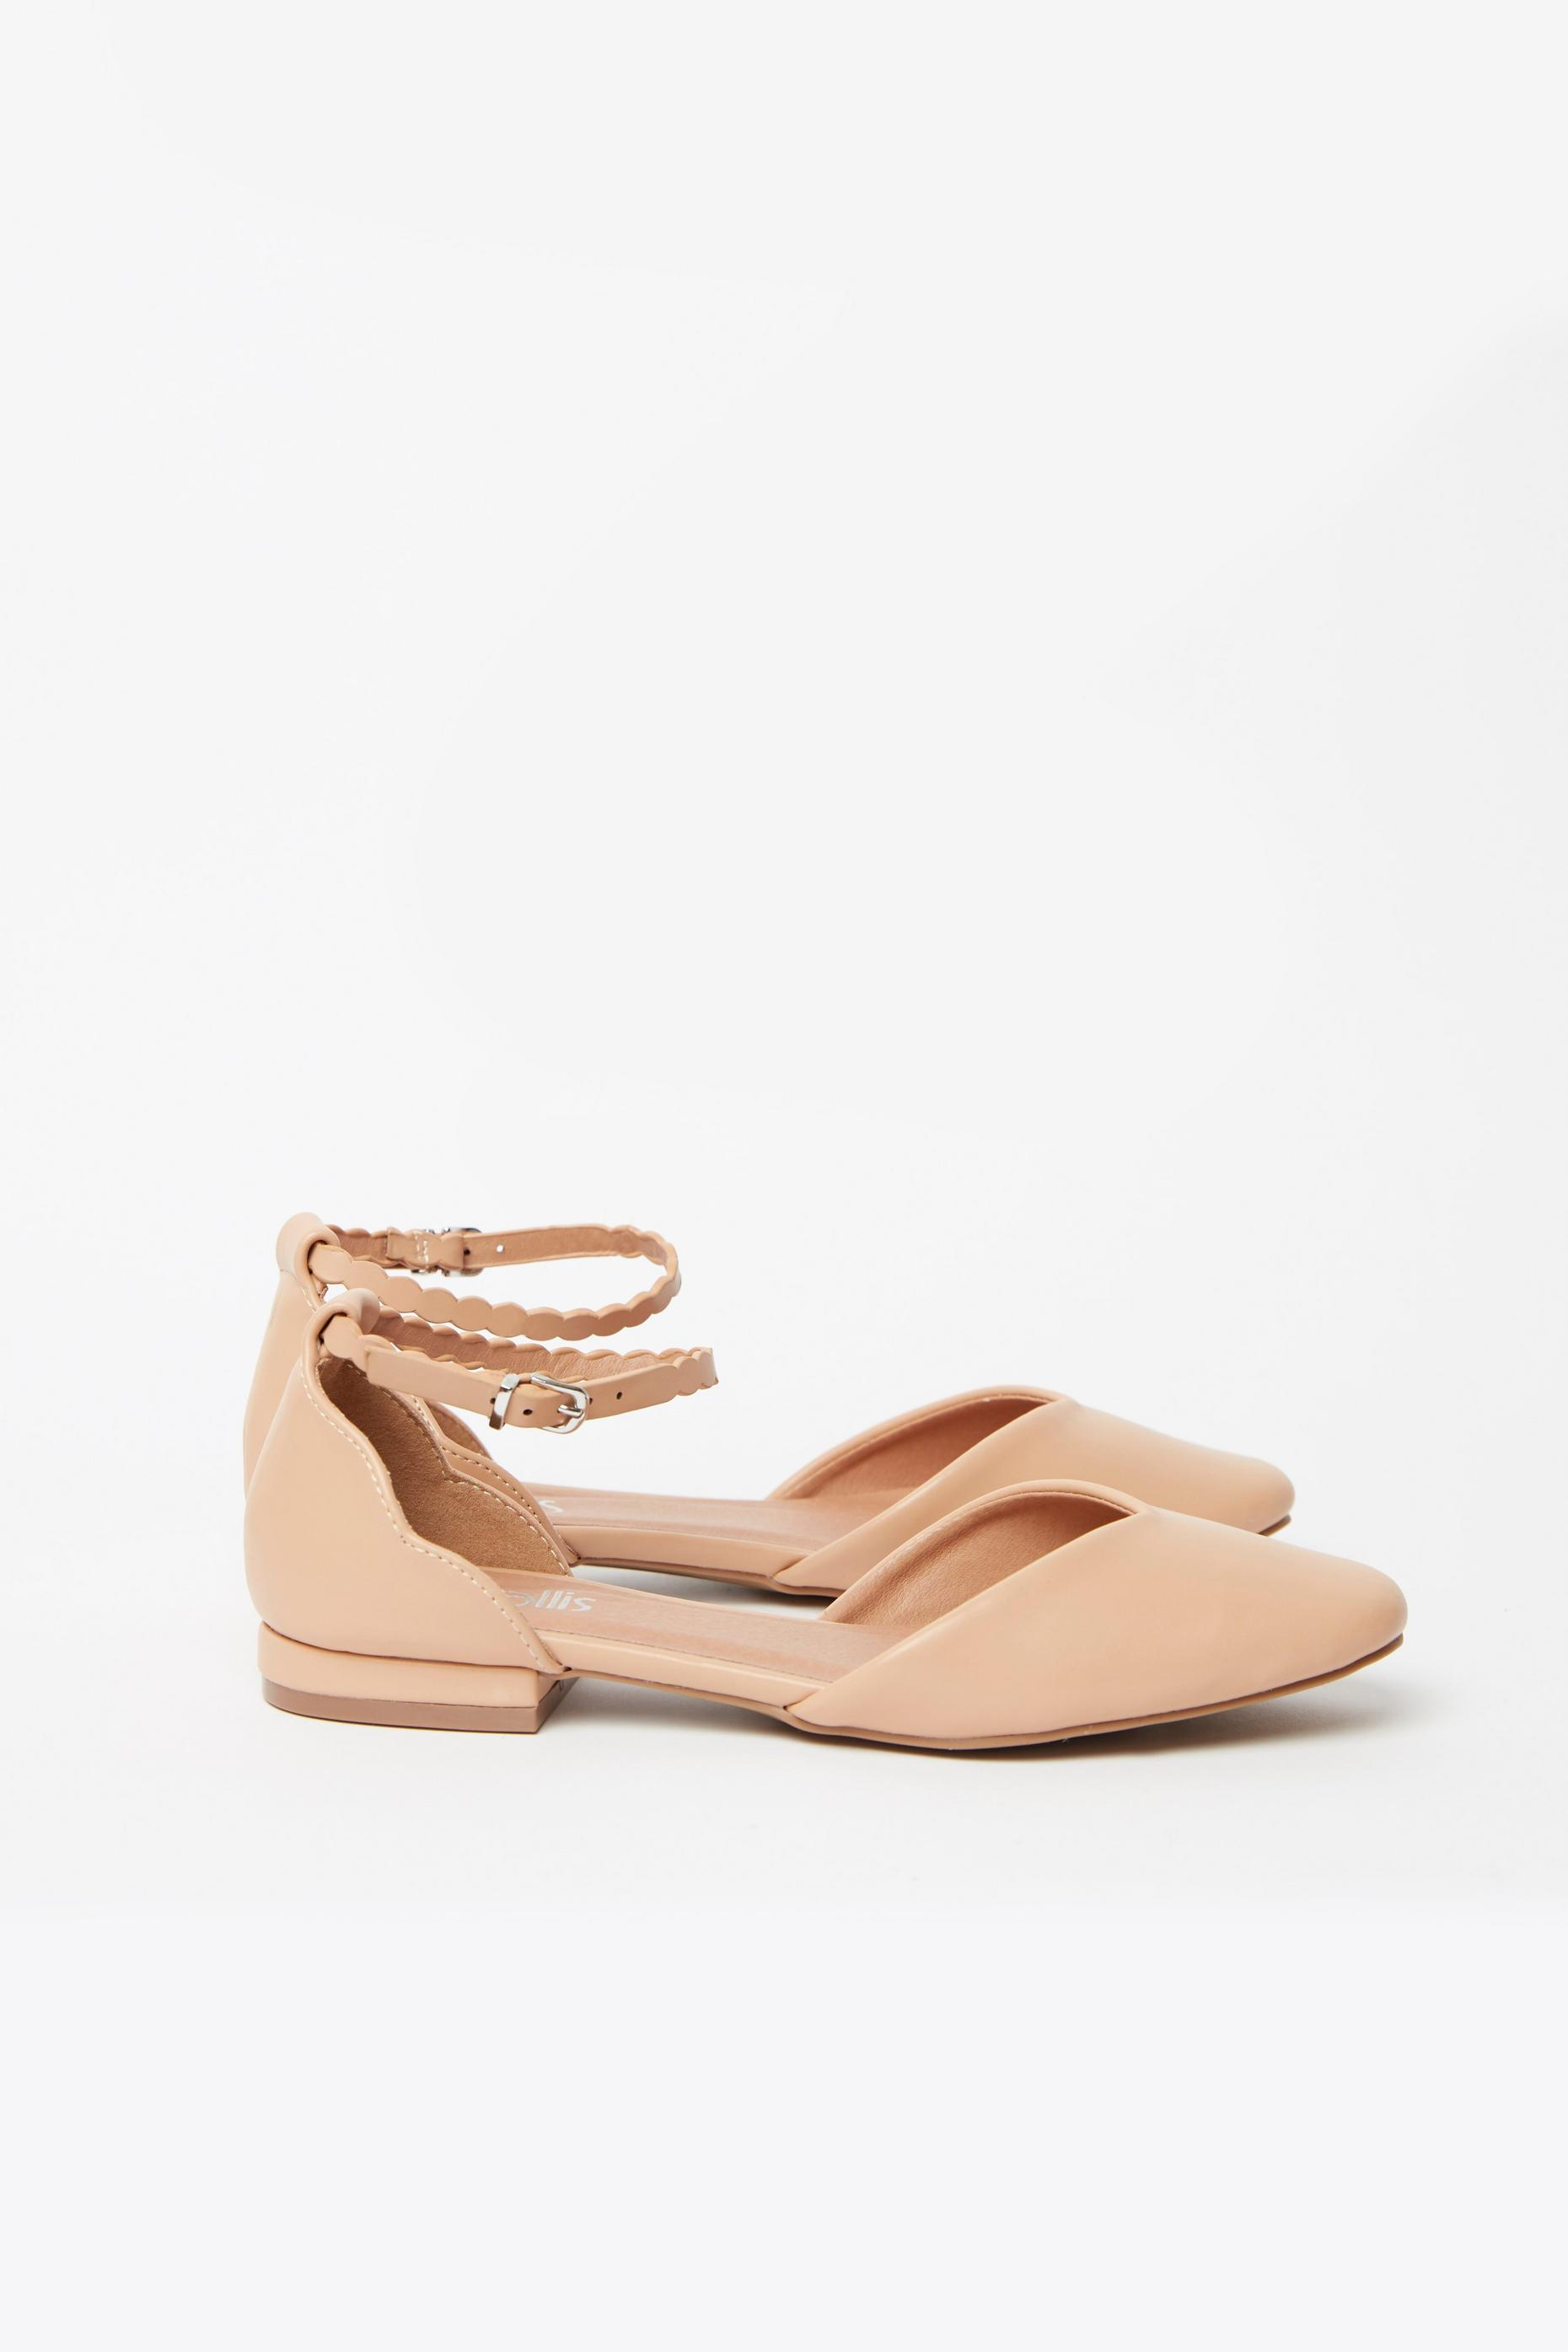 Nude Ankle Strap Shoe